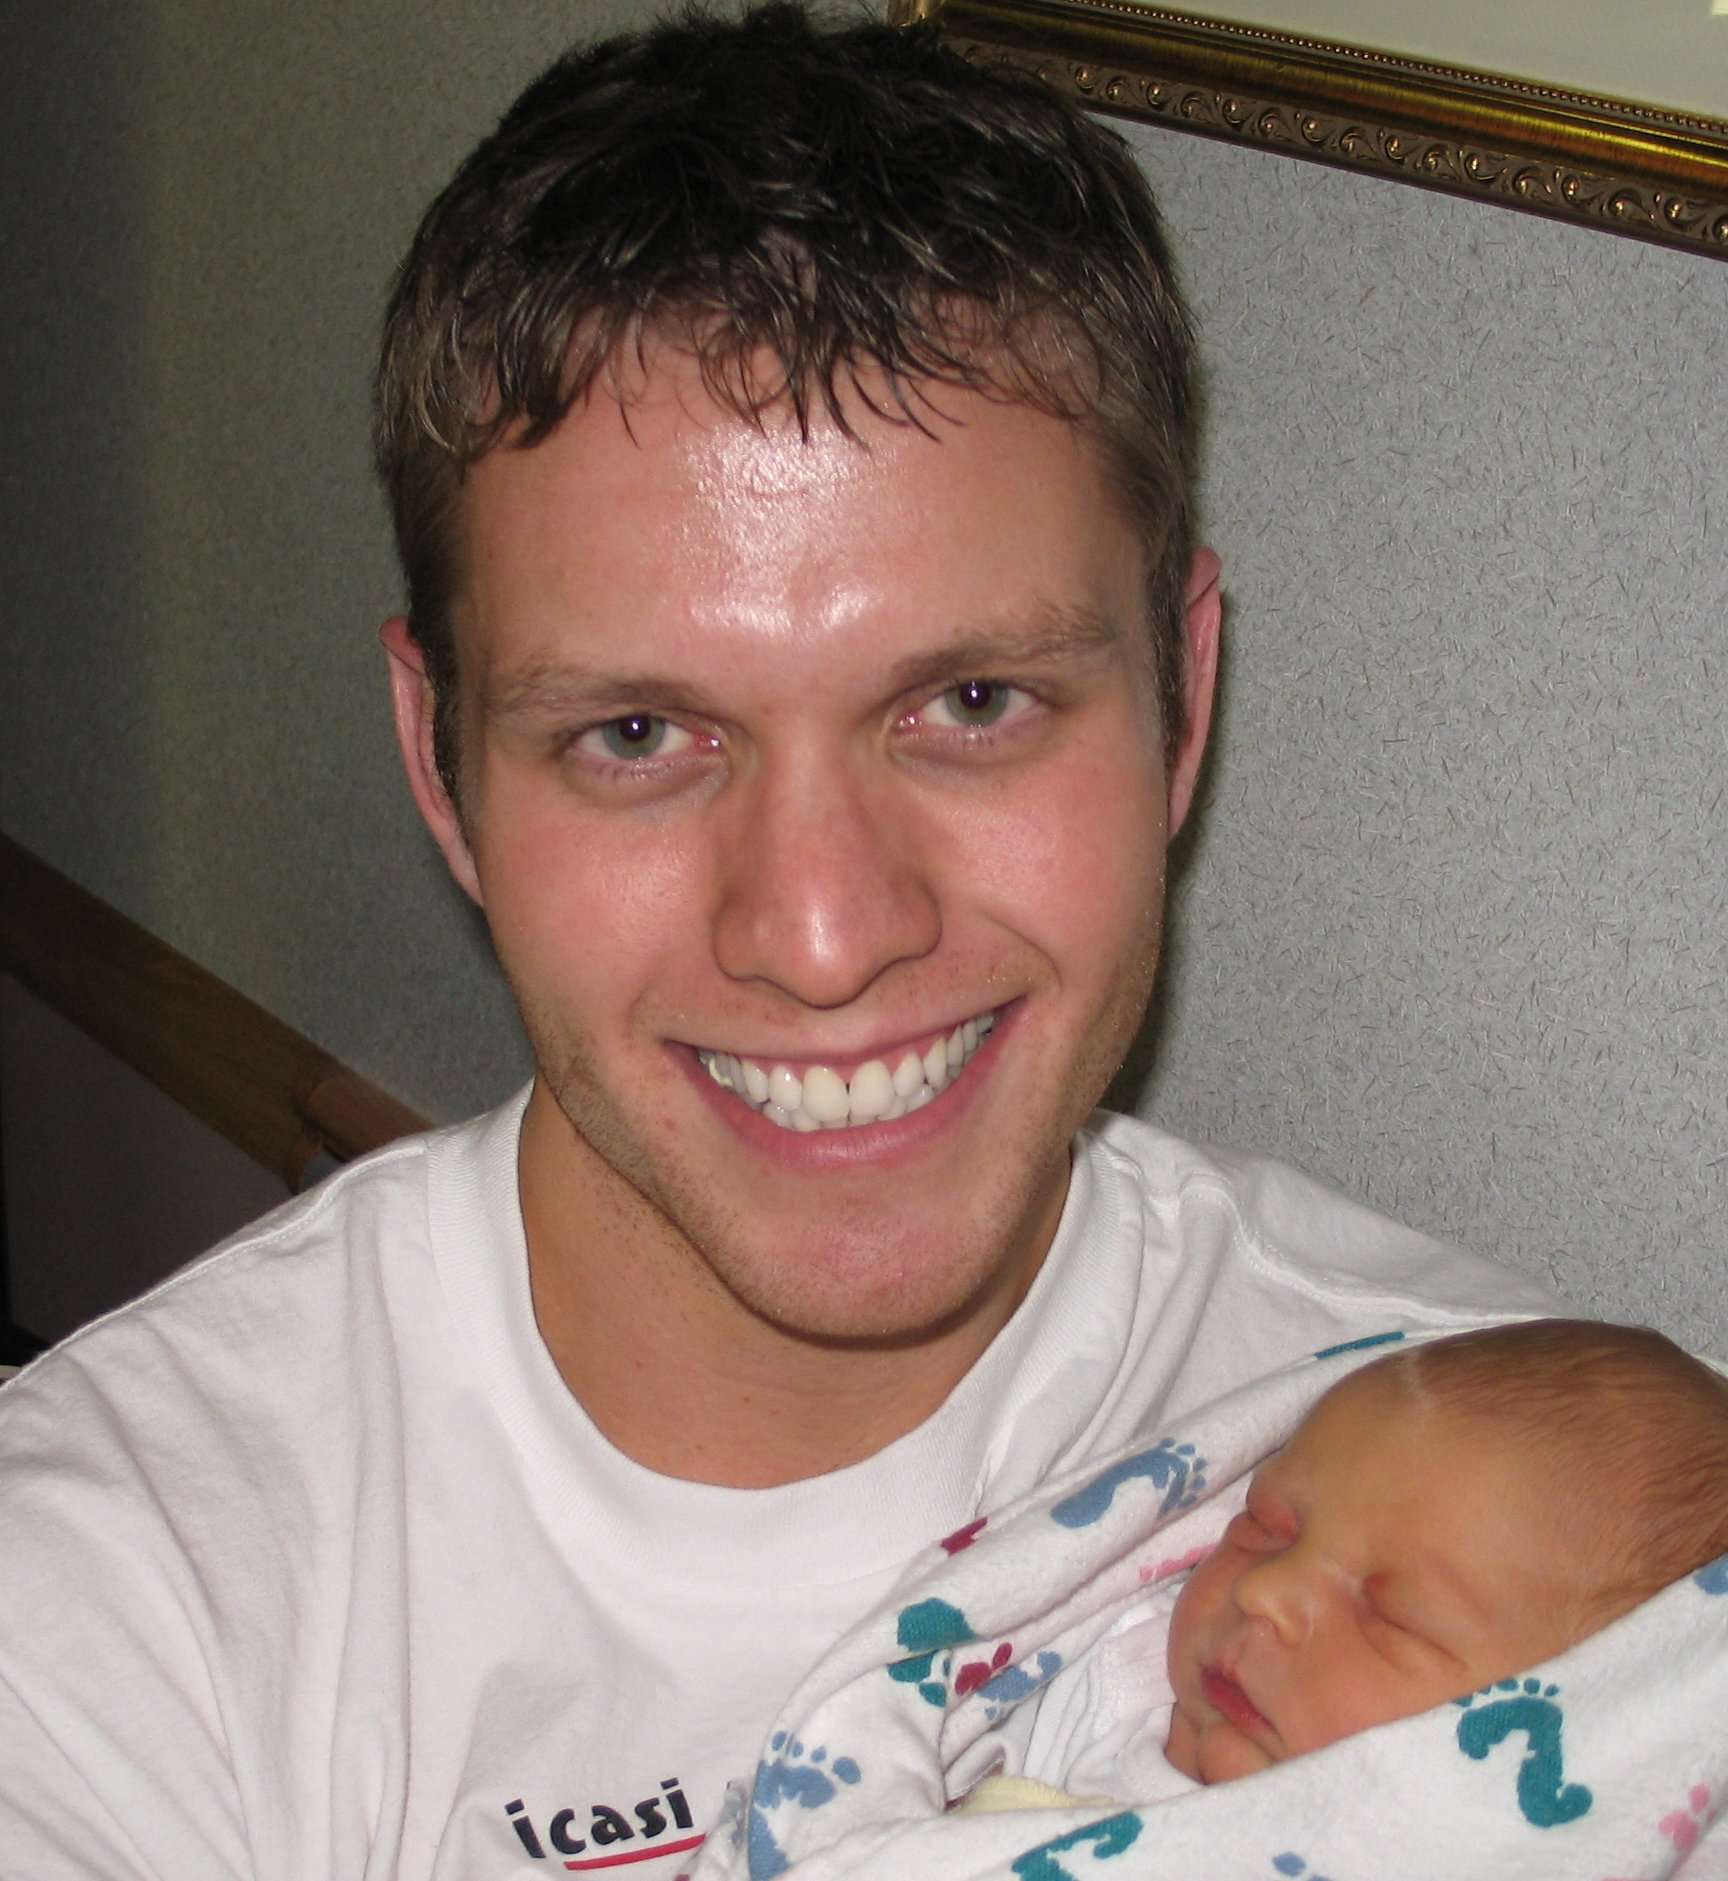 With his nephew in 2005